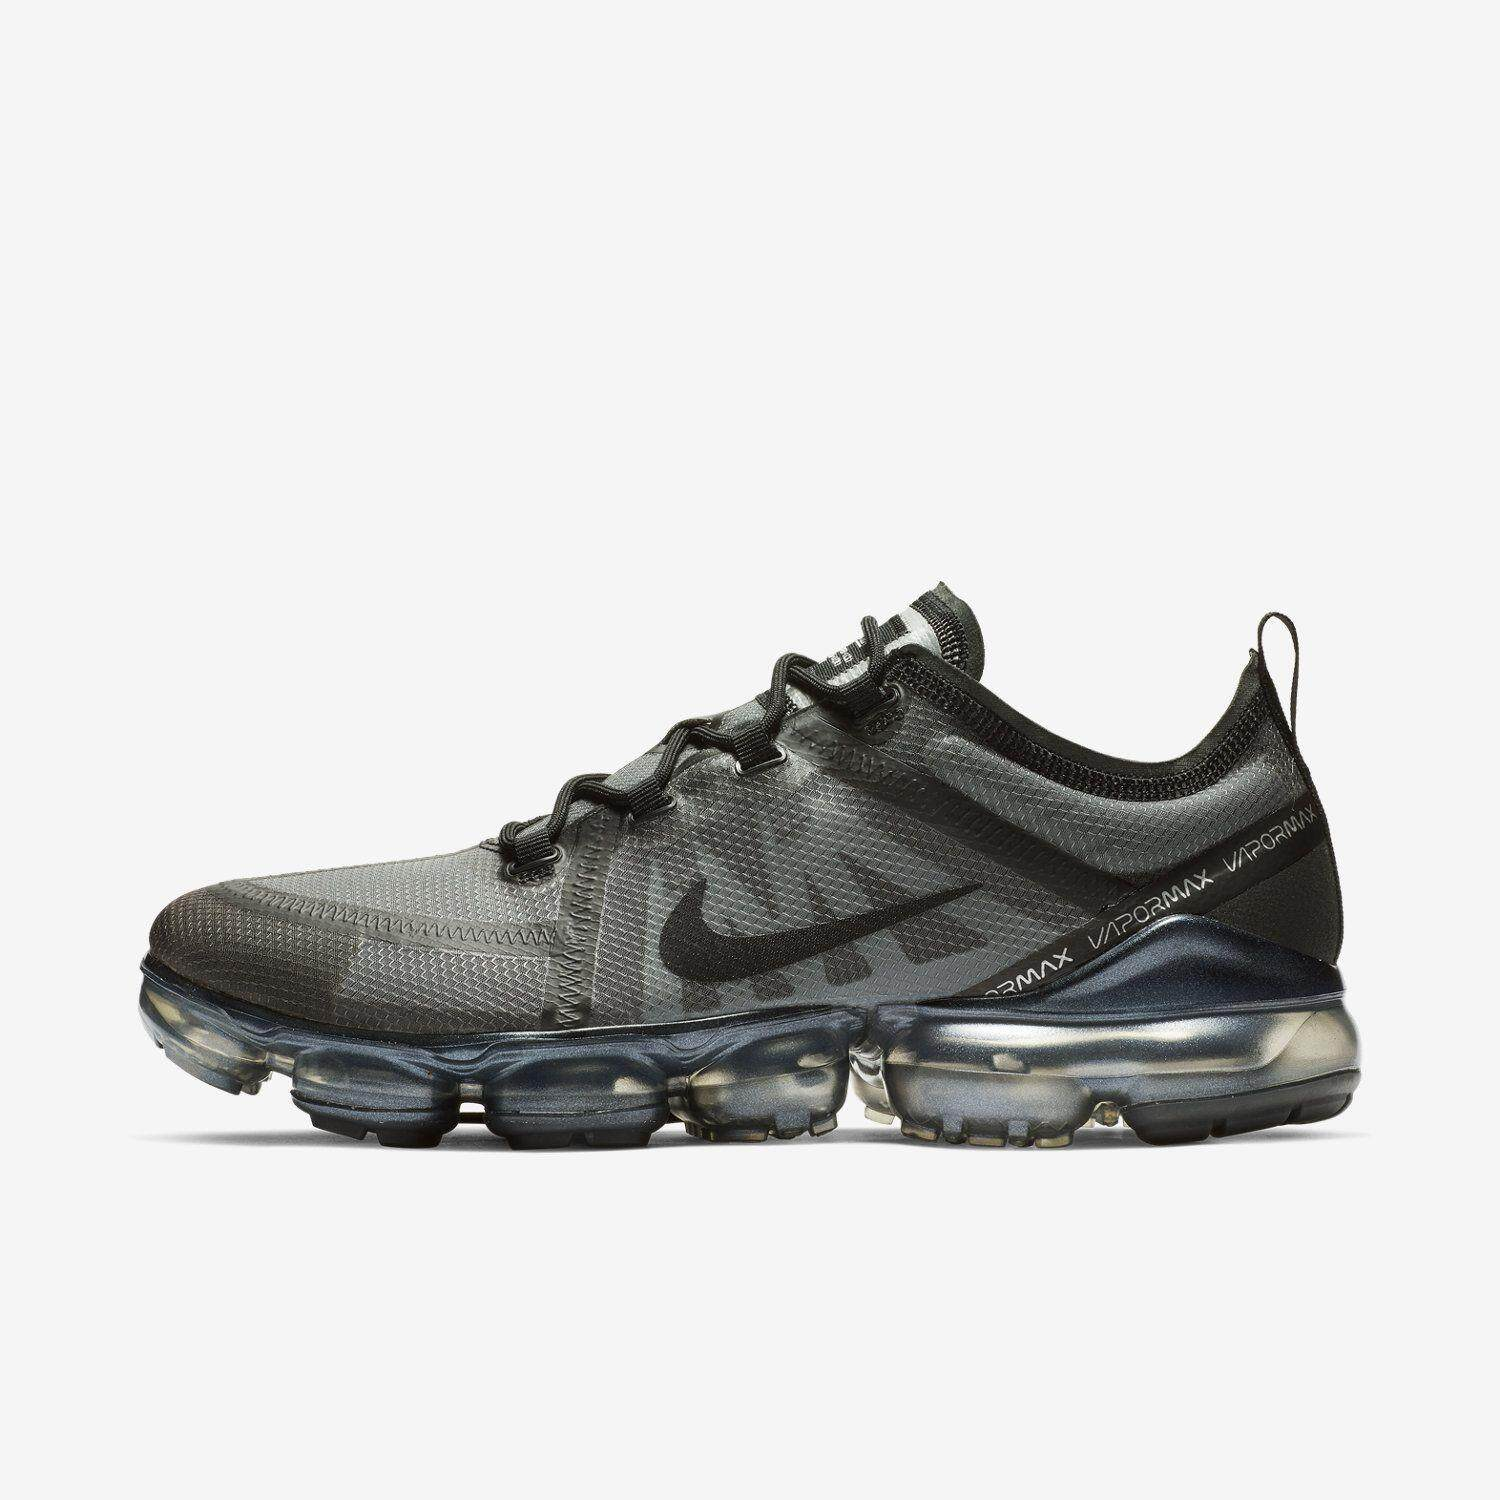 d00c01f8dce 100% Original Nike_AIR VaporMax New Arrival Mens Running Shoes Mesh  Breathable Comfortable Stability Support Sports